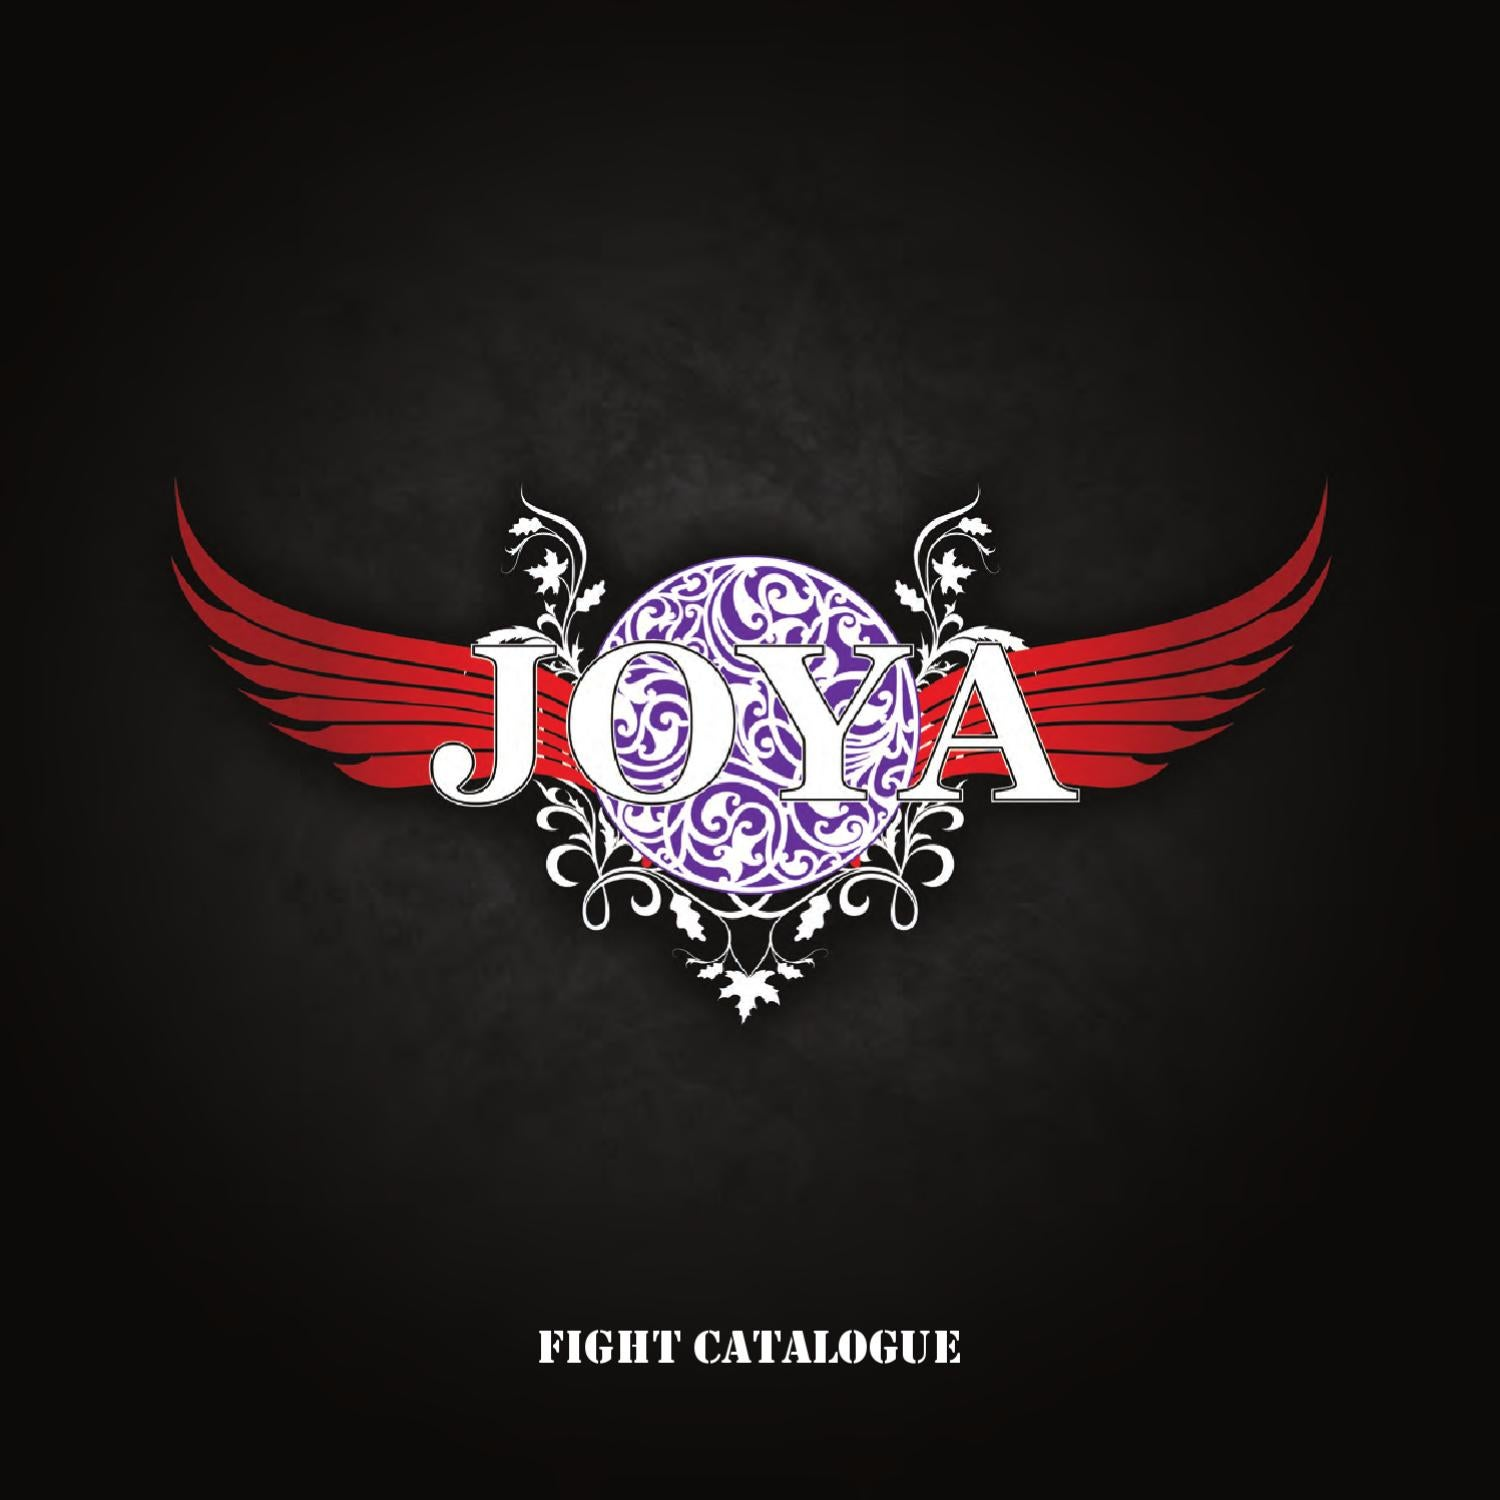 5ca5887693da Joya Fight Catalogue 2012 by Smashingprints.com - issuu